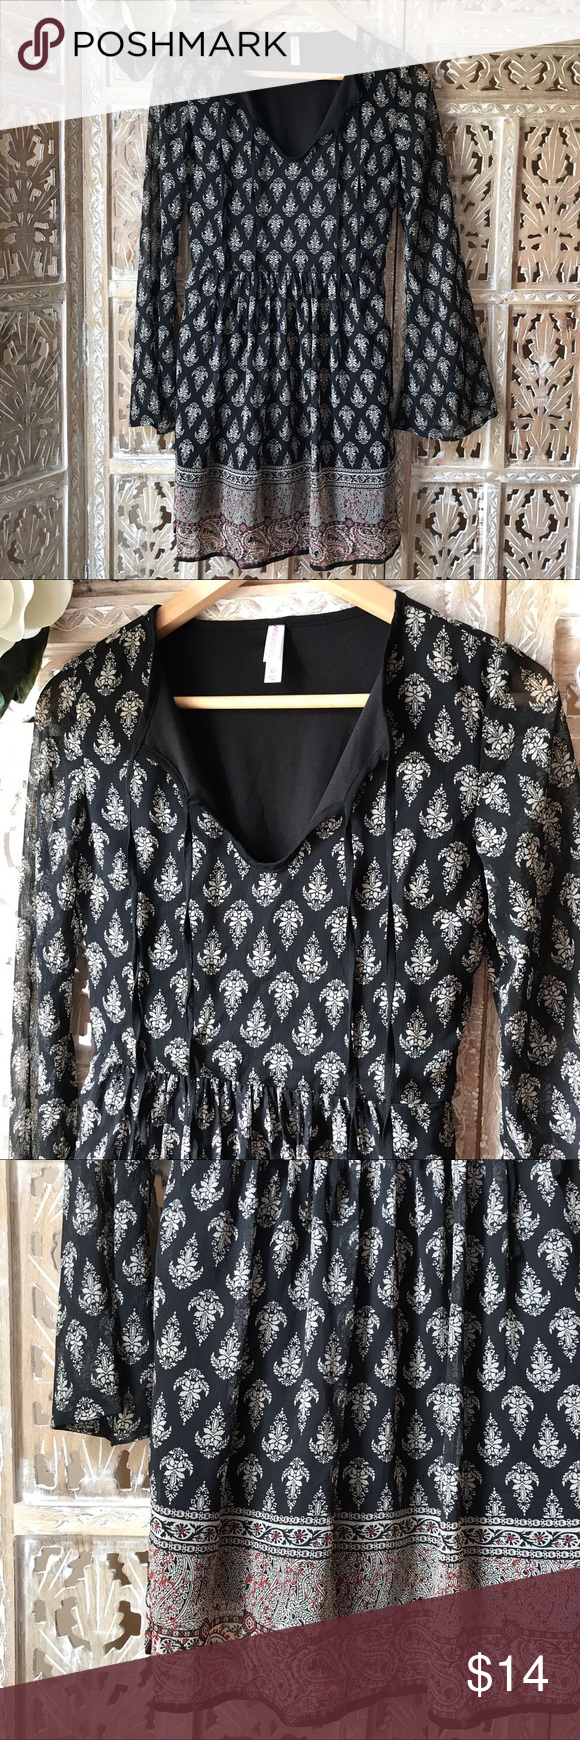 """[Xhilaration] printed dress size XS [Xhilaration] dress size XS. Across chest about 16 1/2"""". Dress length about 33"""". Very good condition. Worn once . Dress is lined. You can wear ties or untied Xhilaration Dresses"""